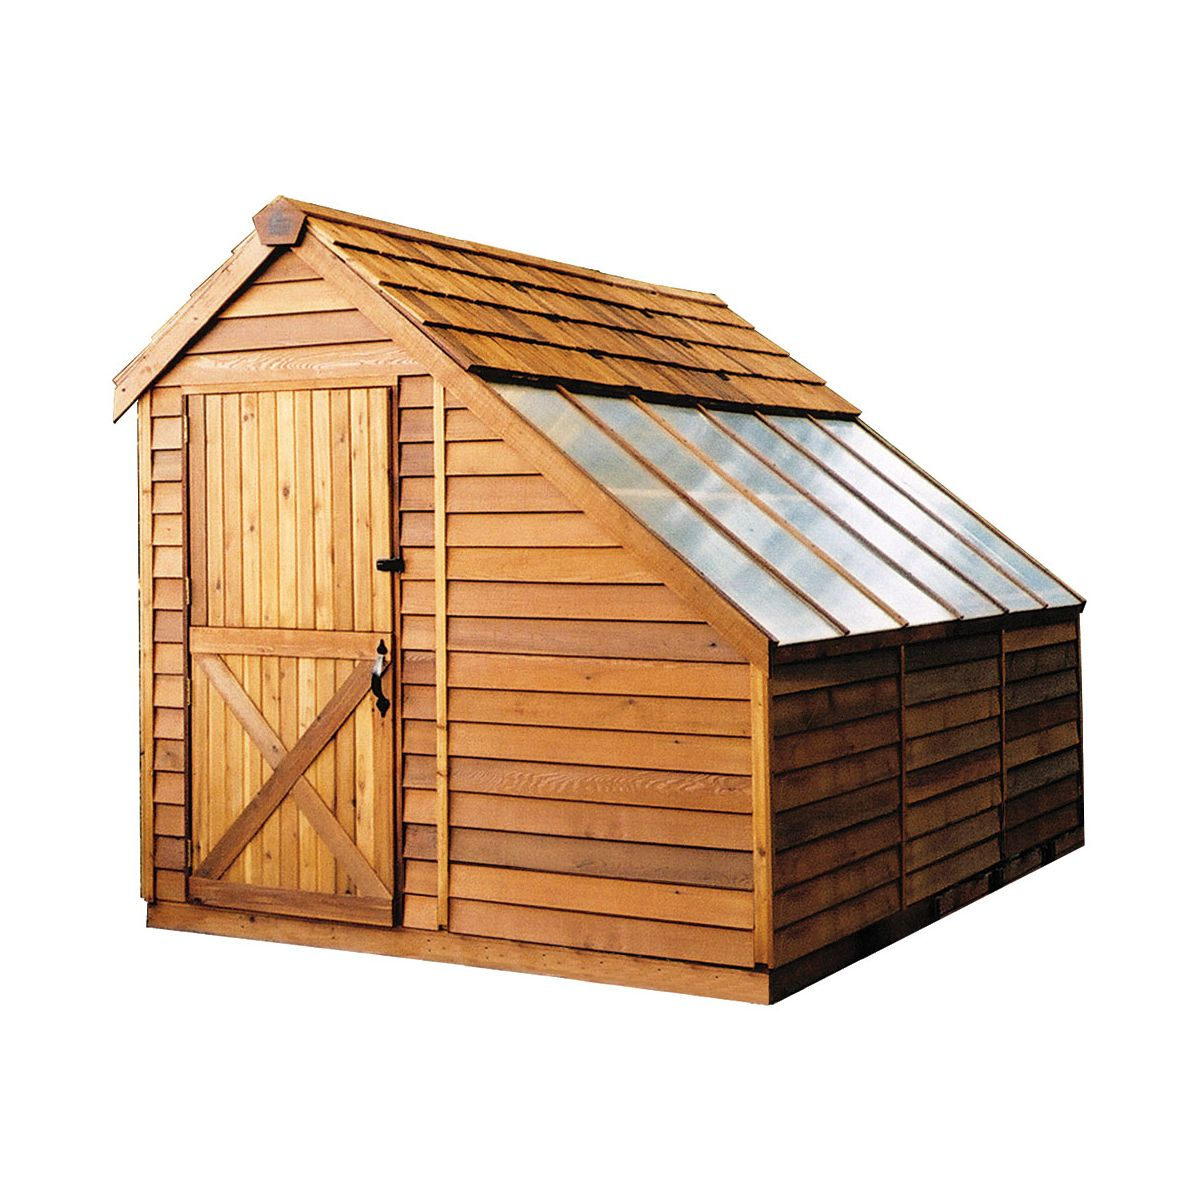 Shop Cedar Shed Sh8 Sunhouse Shed At Lowe S Canada Find Our Selection Of Storage Tool Garden Sheds At The Lowest Cedar Shed Diy Shed Plans Building A Shed